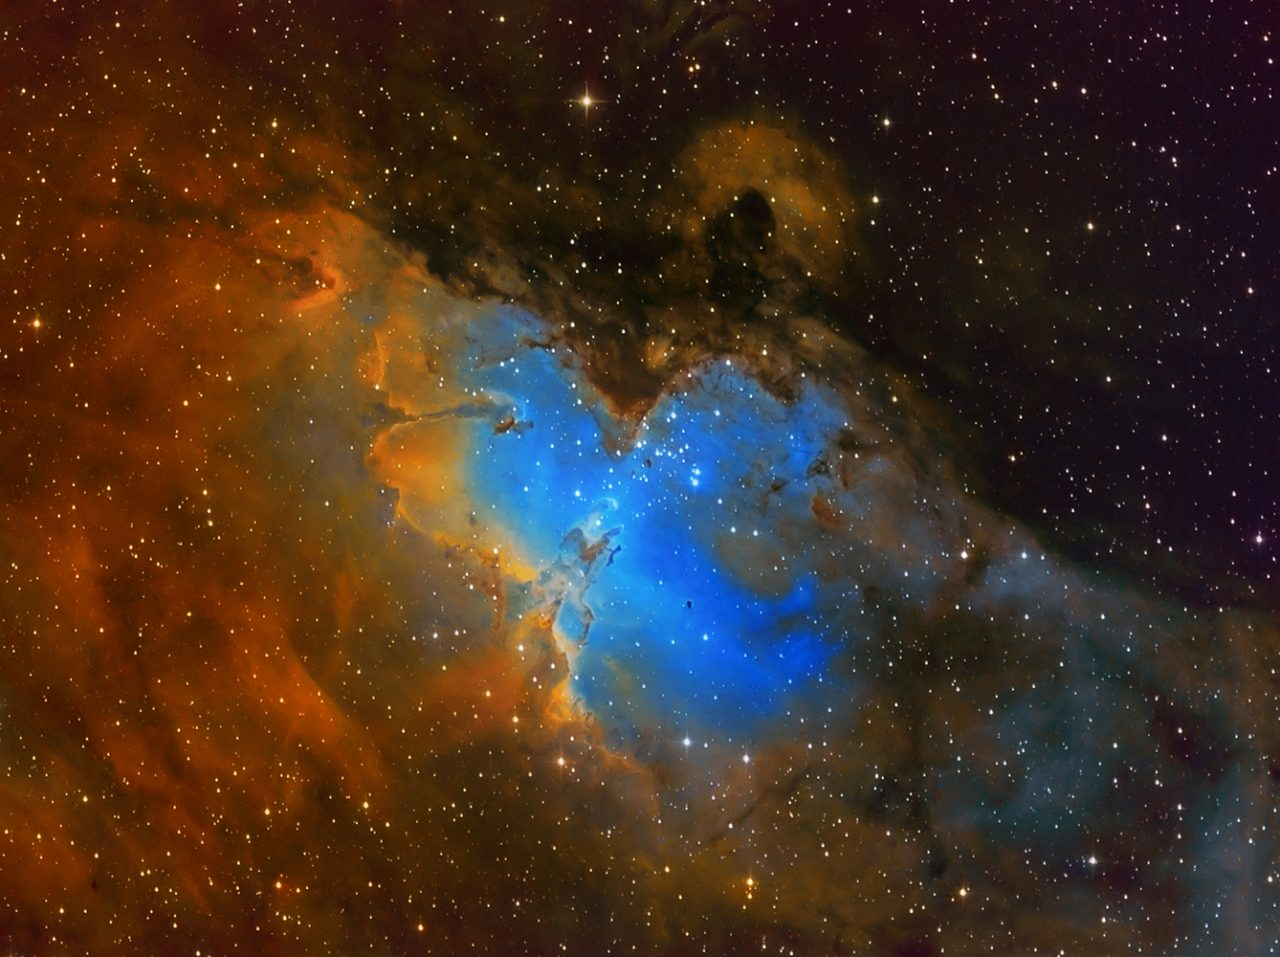 Messier16-Eagle Nebula, von Paul Schuberth